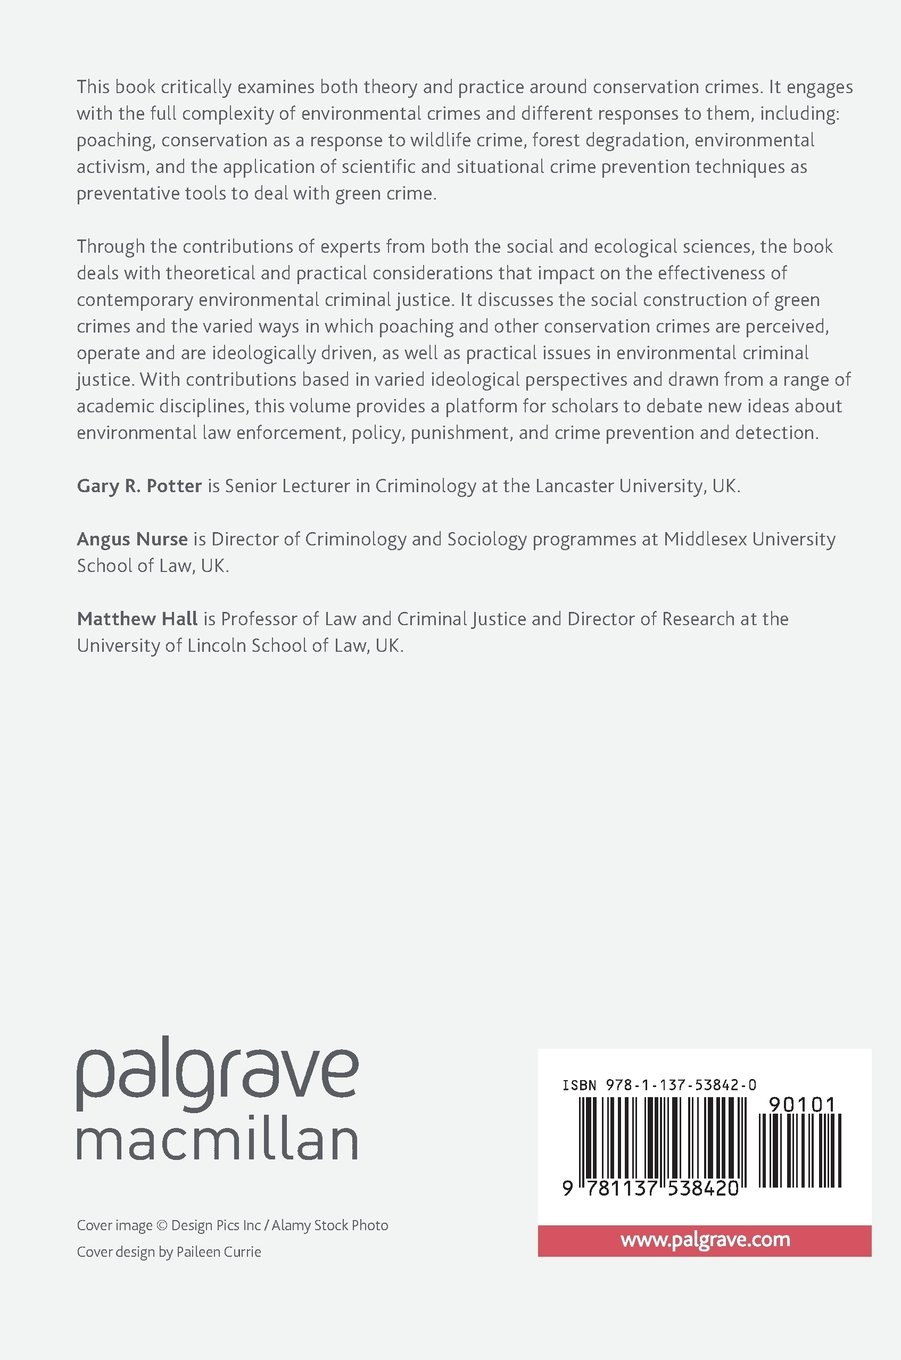 The Geography of Environmental Crime: Conservation, Wildlife Crime and Environmental Activism (Palgrave Studies in Green Criminology)